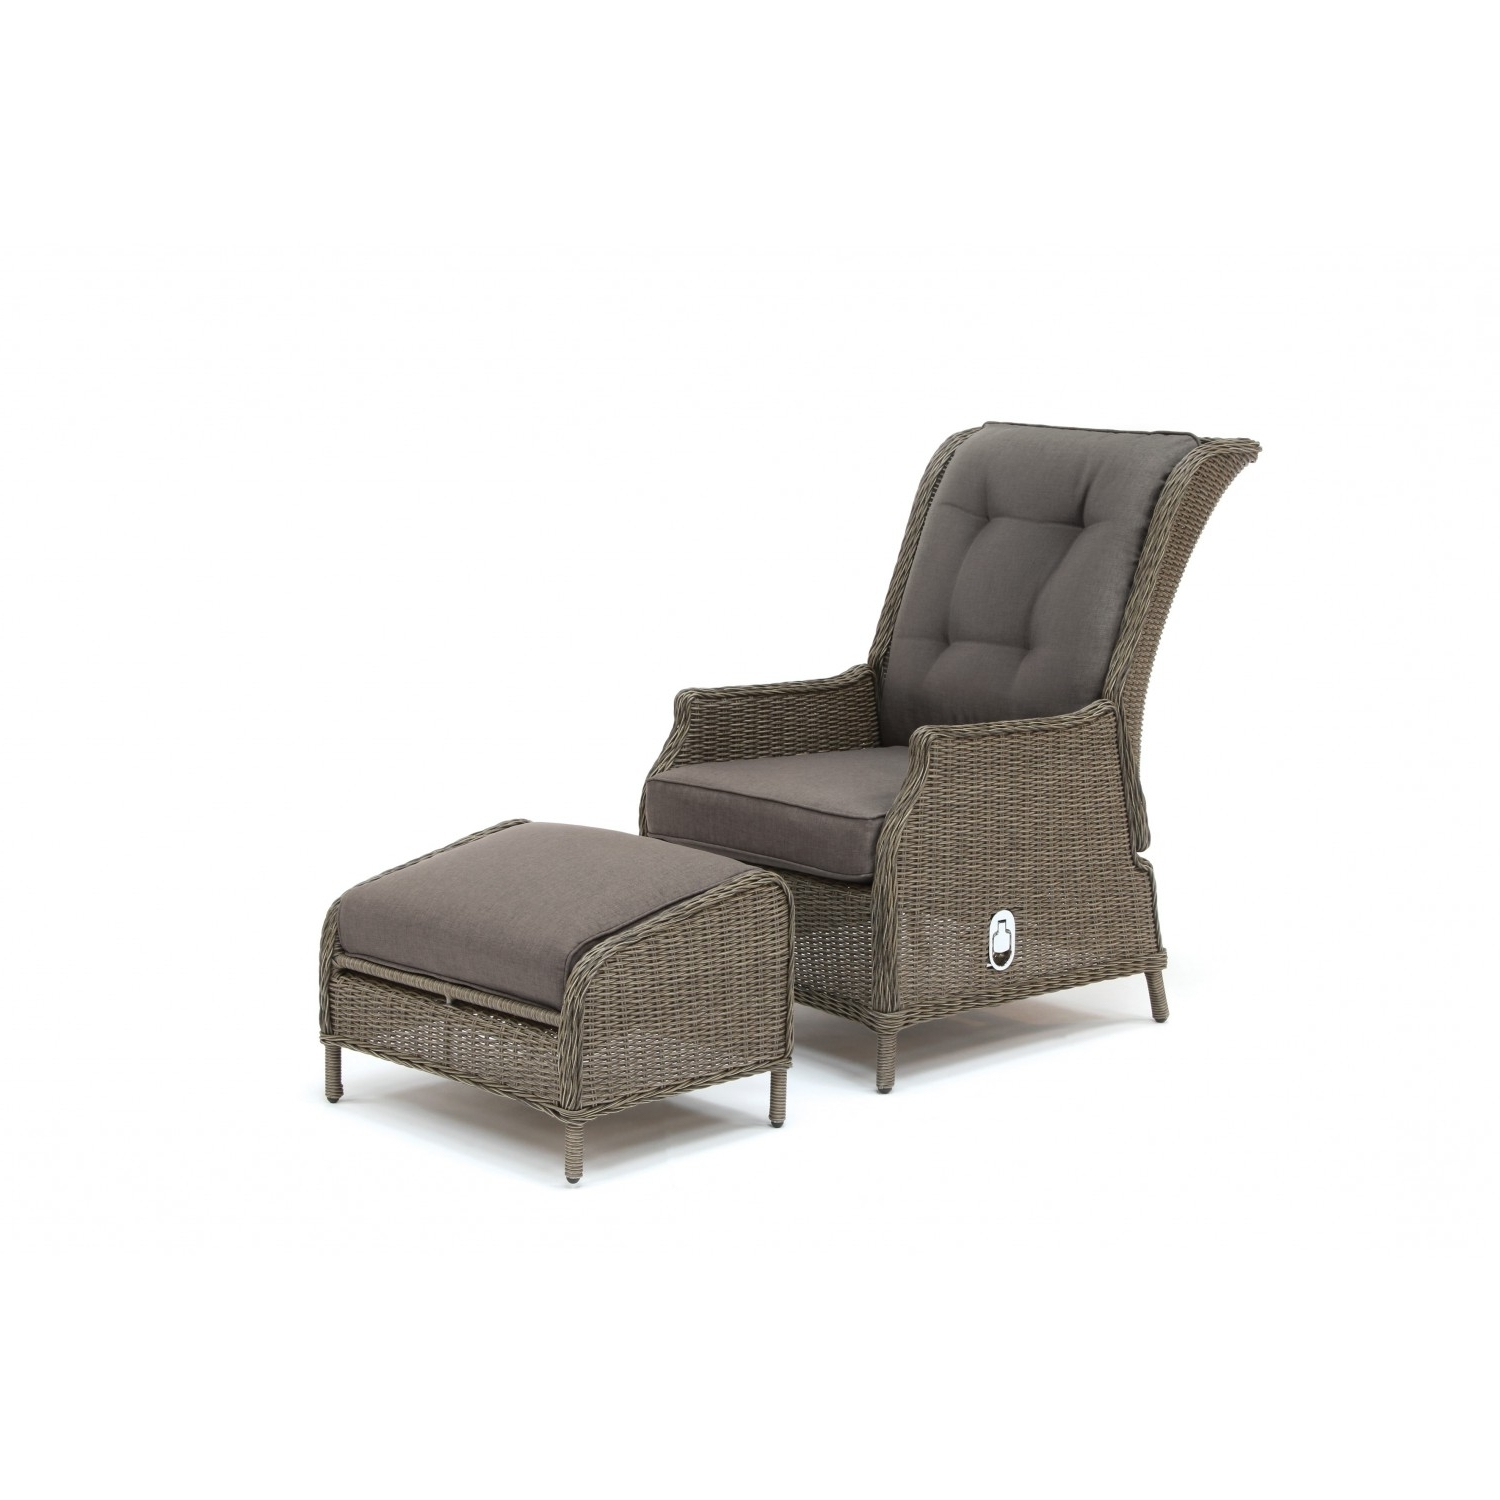 Kettler Chaise Lounge Chairs Within Best And Newest Kettler Jarvis Recliner With Footstool – Rattan Inc Taupe Cushions (View 7 of 15)